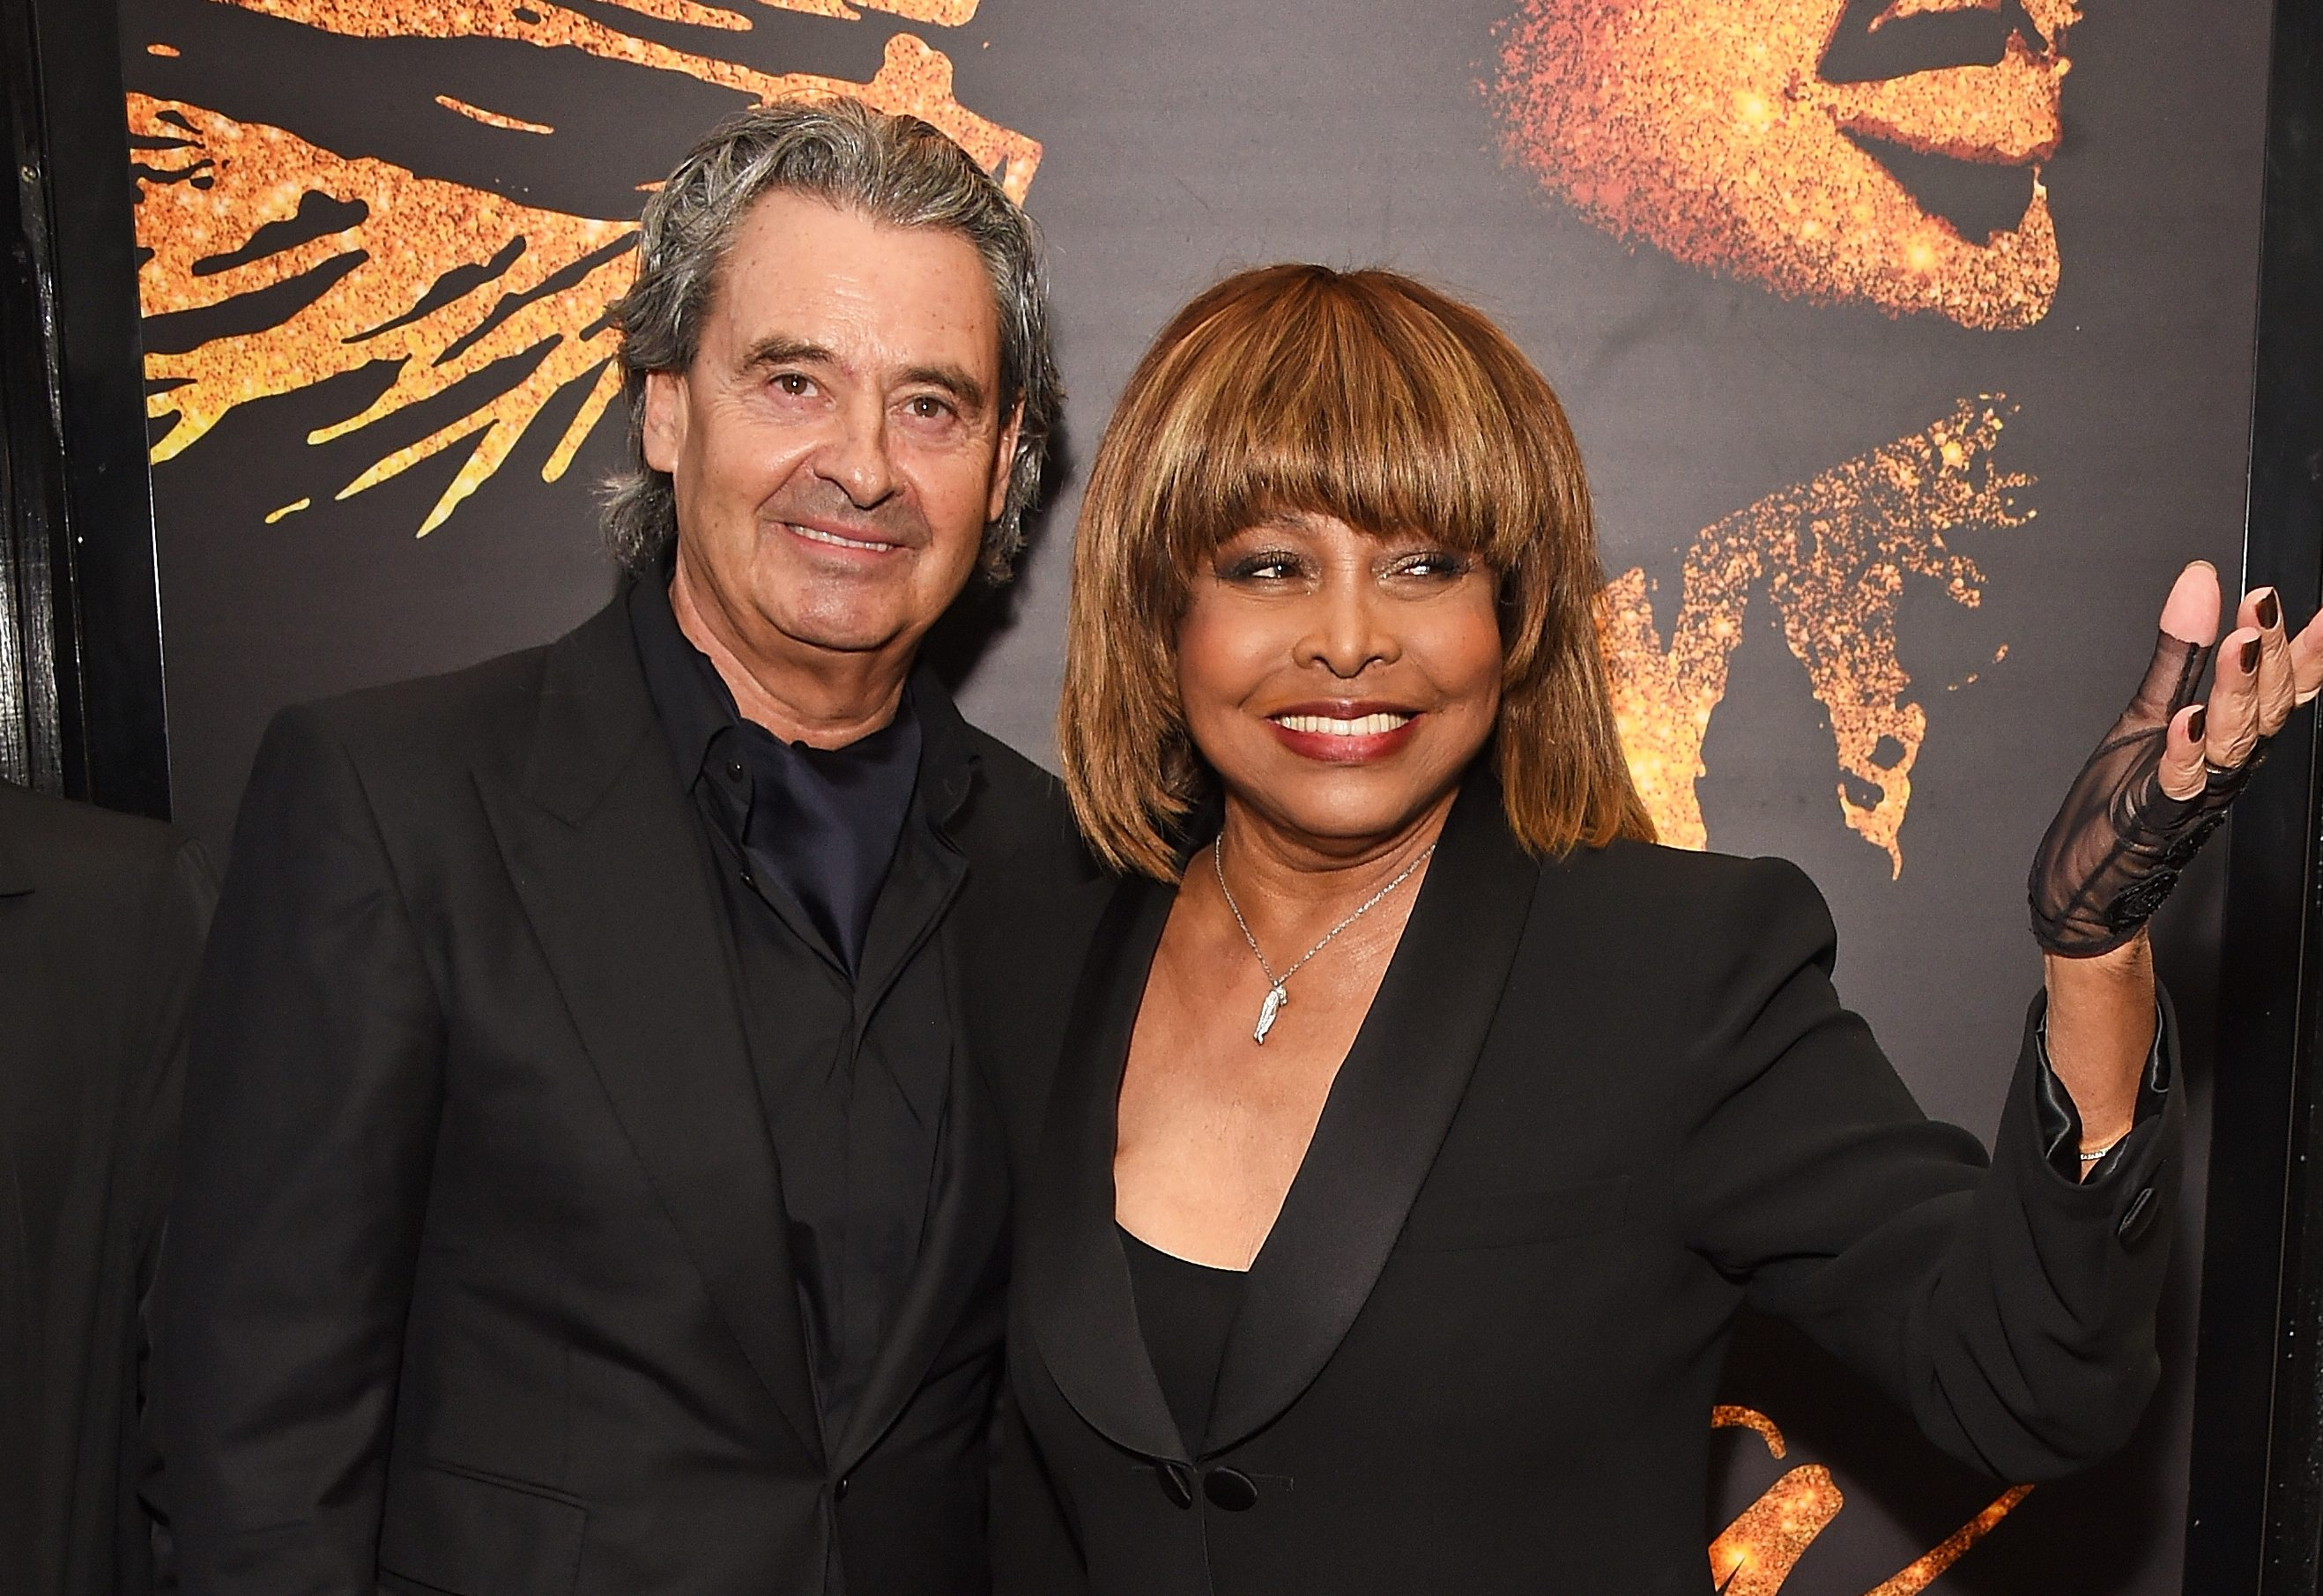 Tina Turner Reminisces About Meeting Longtime Love Erwin Bach In New Preview Of HBO's 'Tina' Doc | ETCanada.com